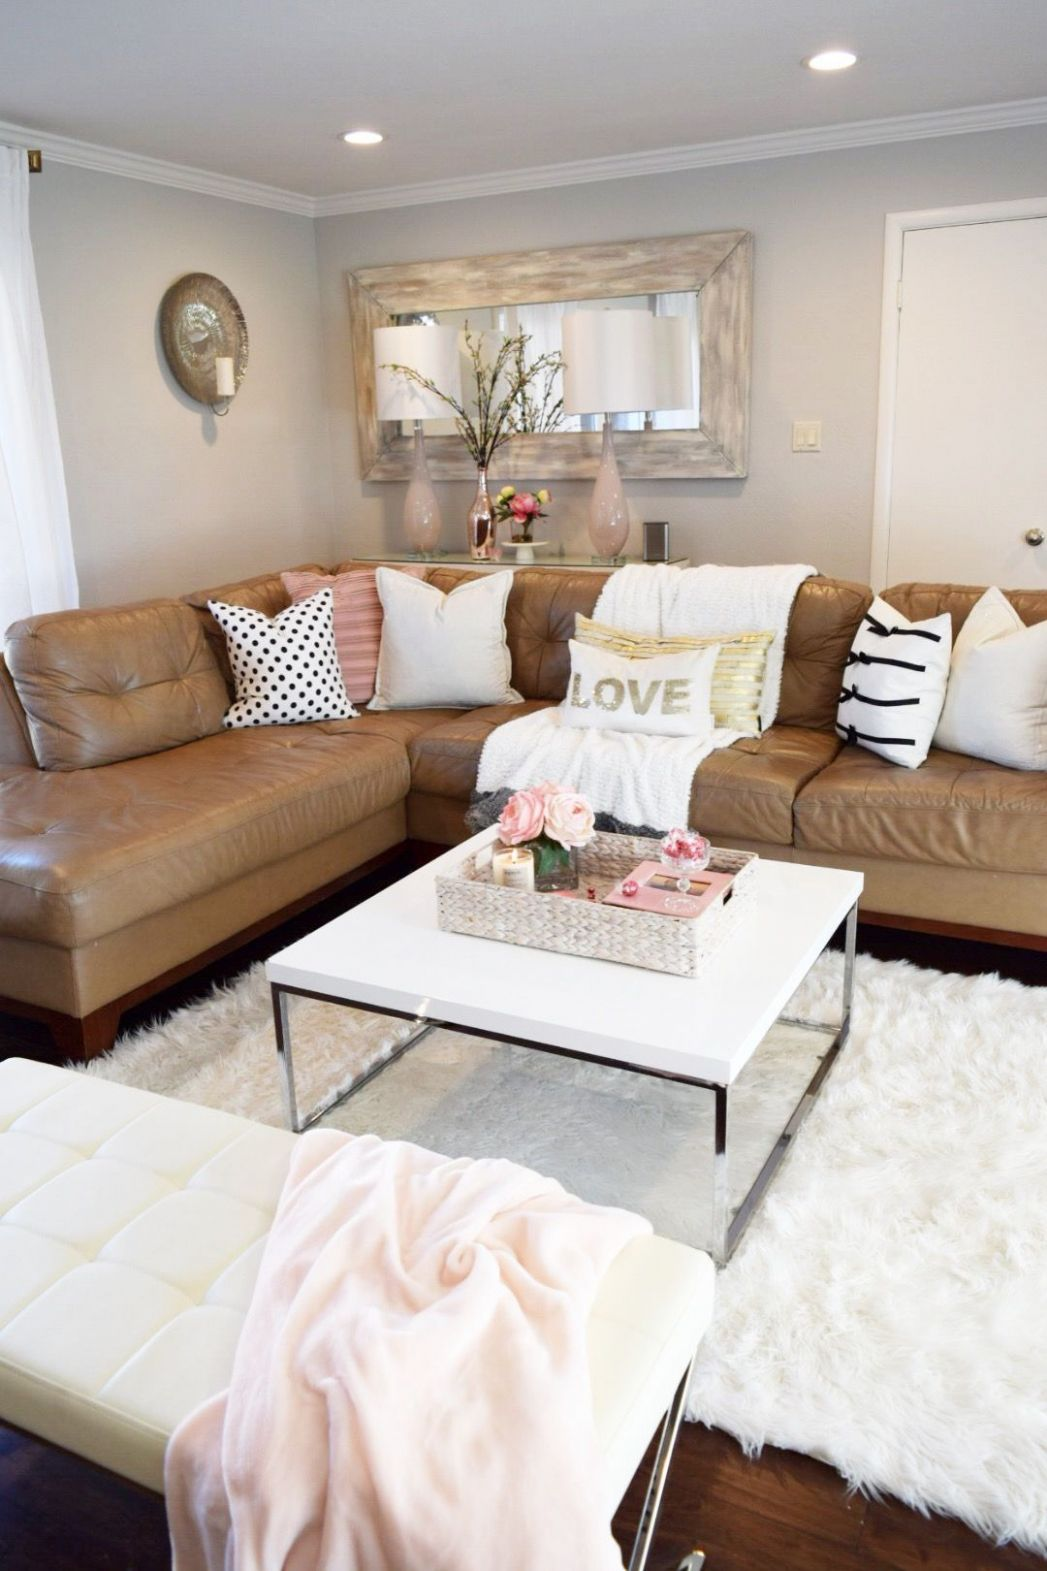 Tan Couch Living Room Ideas in 11 (With images) | Tan couch ..